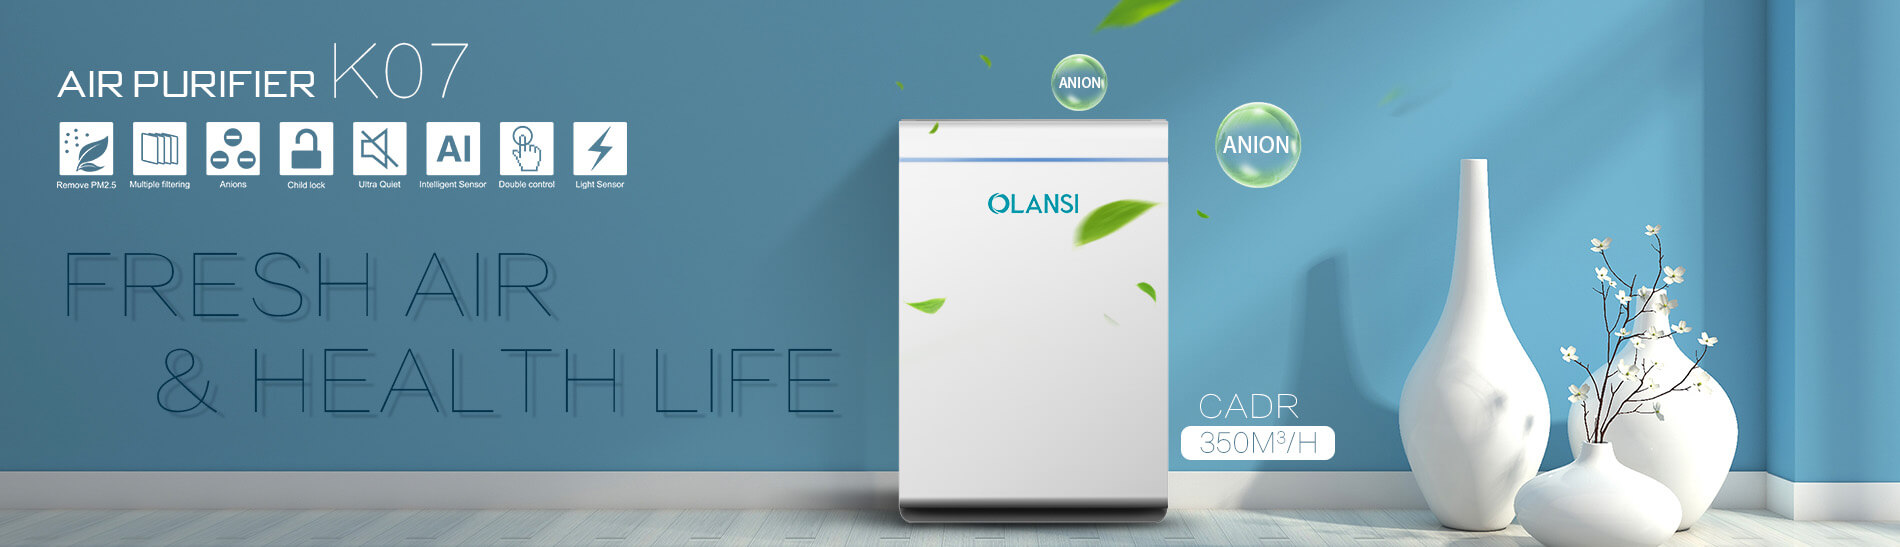 Olansi Healthcare Co., Ltd Introduces a Whole New Range of Air Purifiers That are Durable, Effective and Affordable